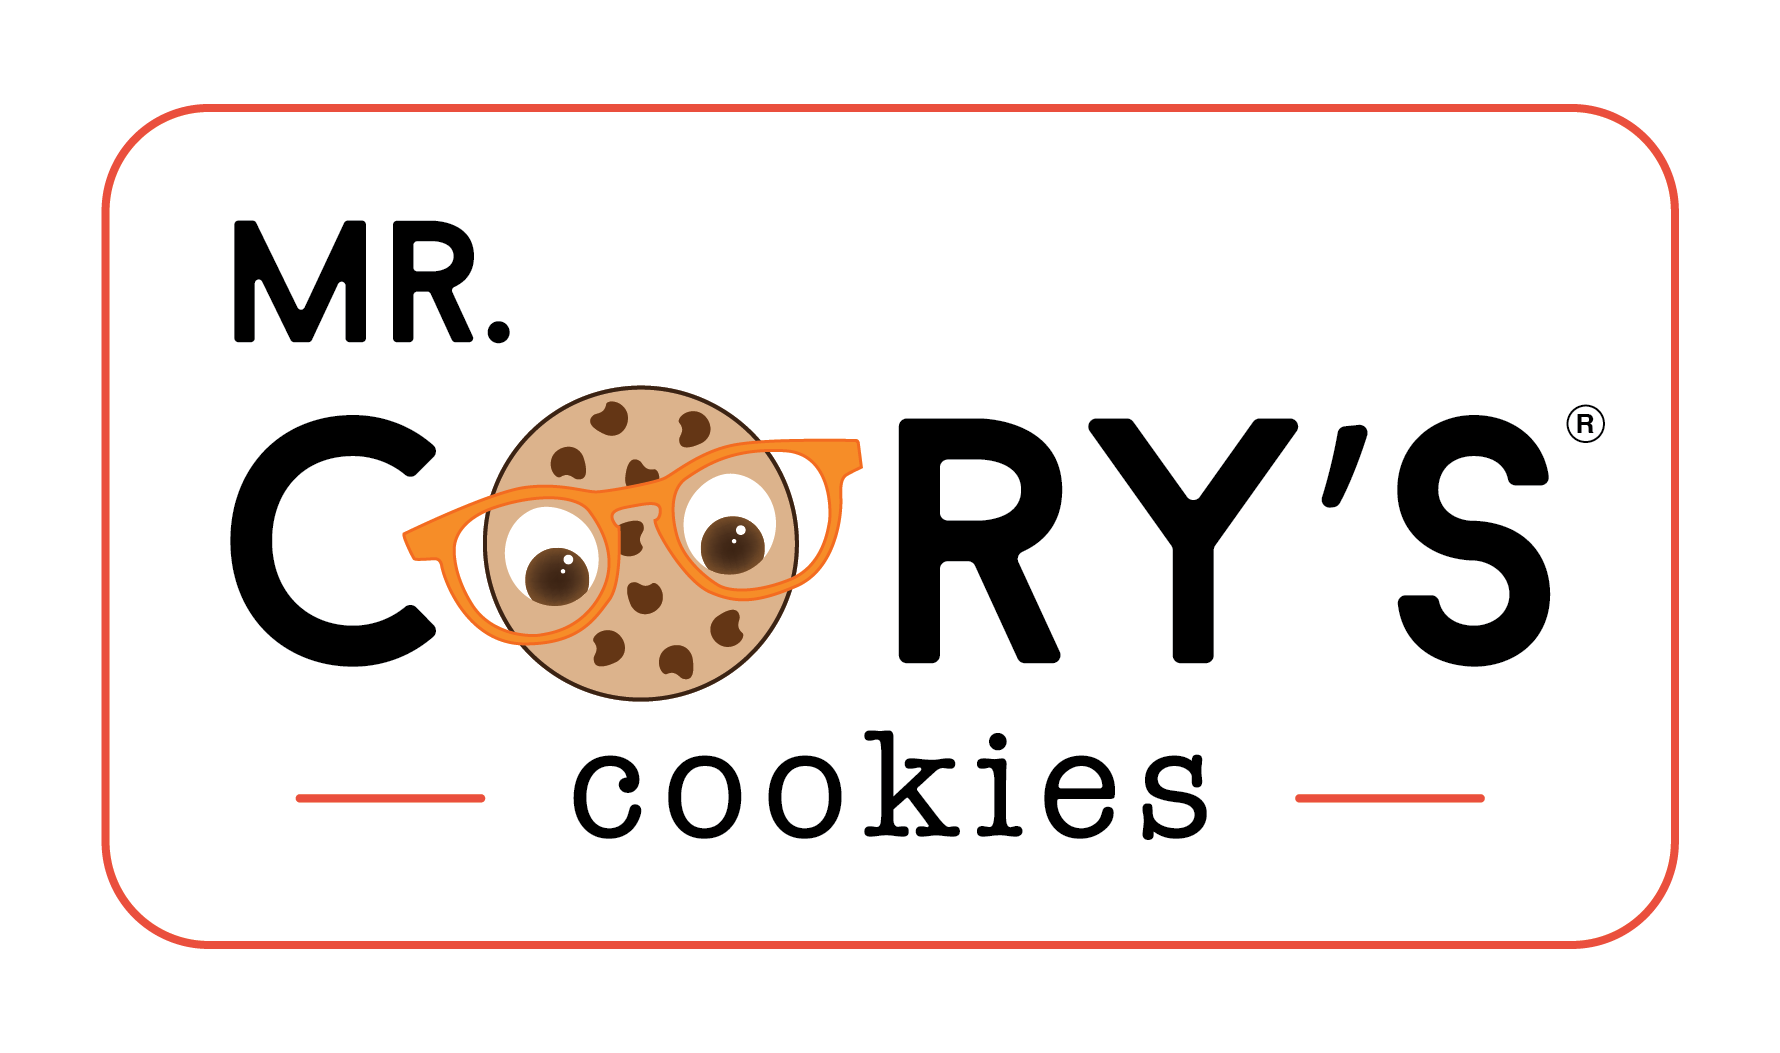 mr cory s cookie s mr cory s cookies mr cory s cookie s mr cory s cookies